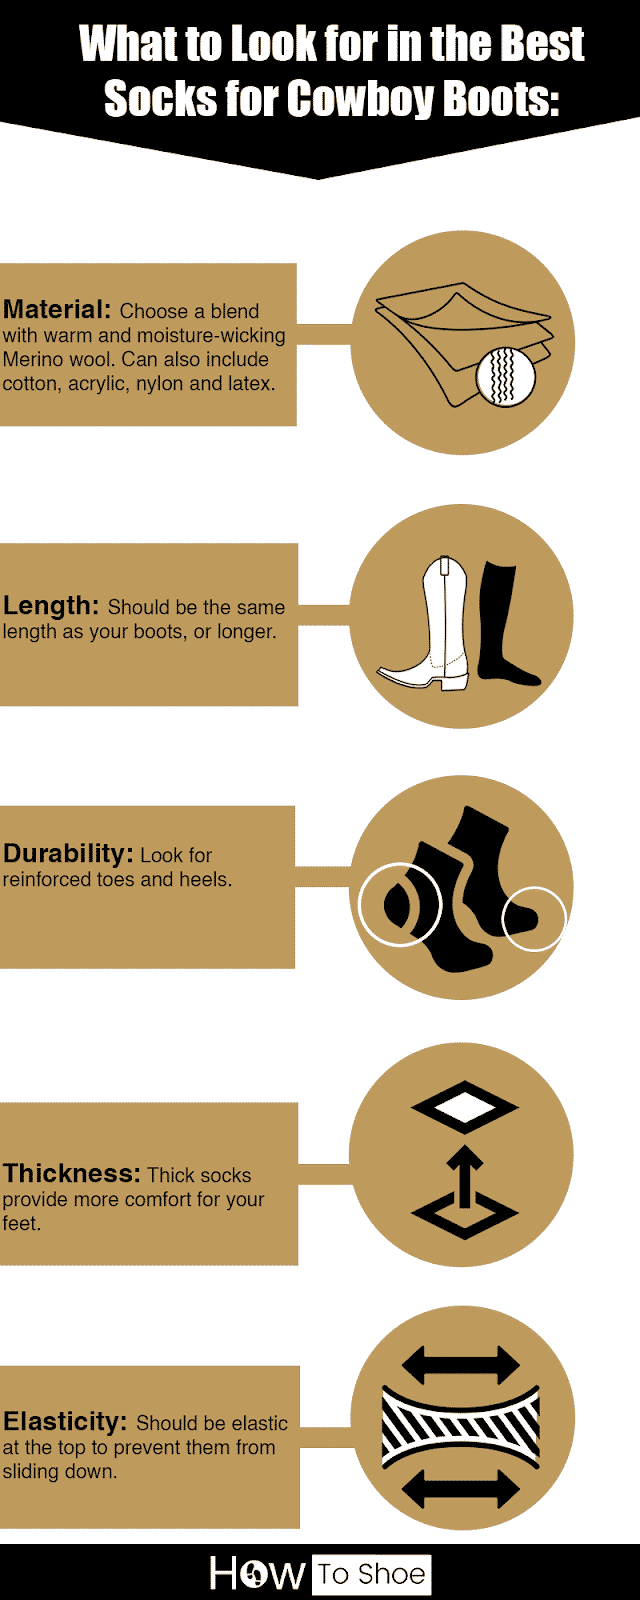 Best Socks for Cowboy Boots in 2021 infographic